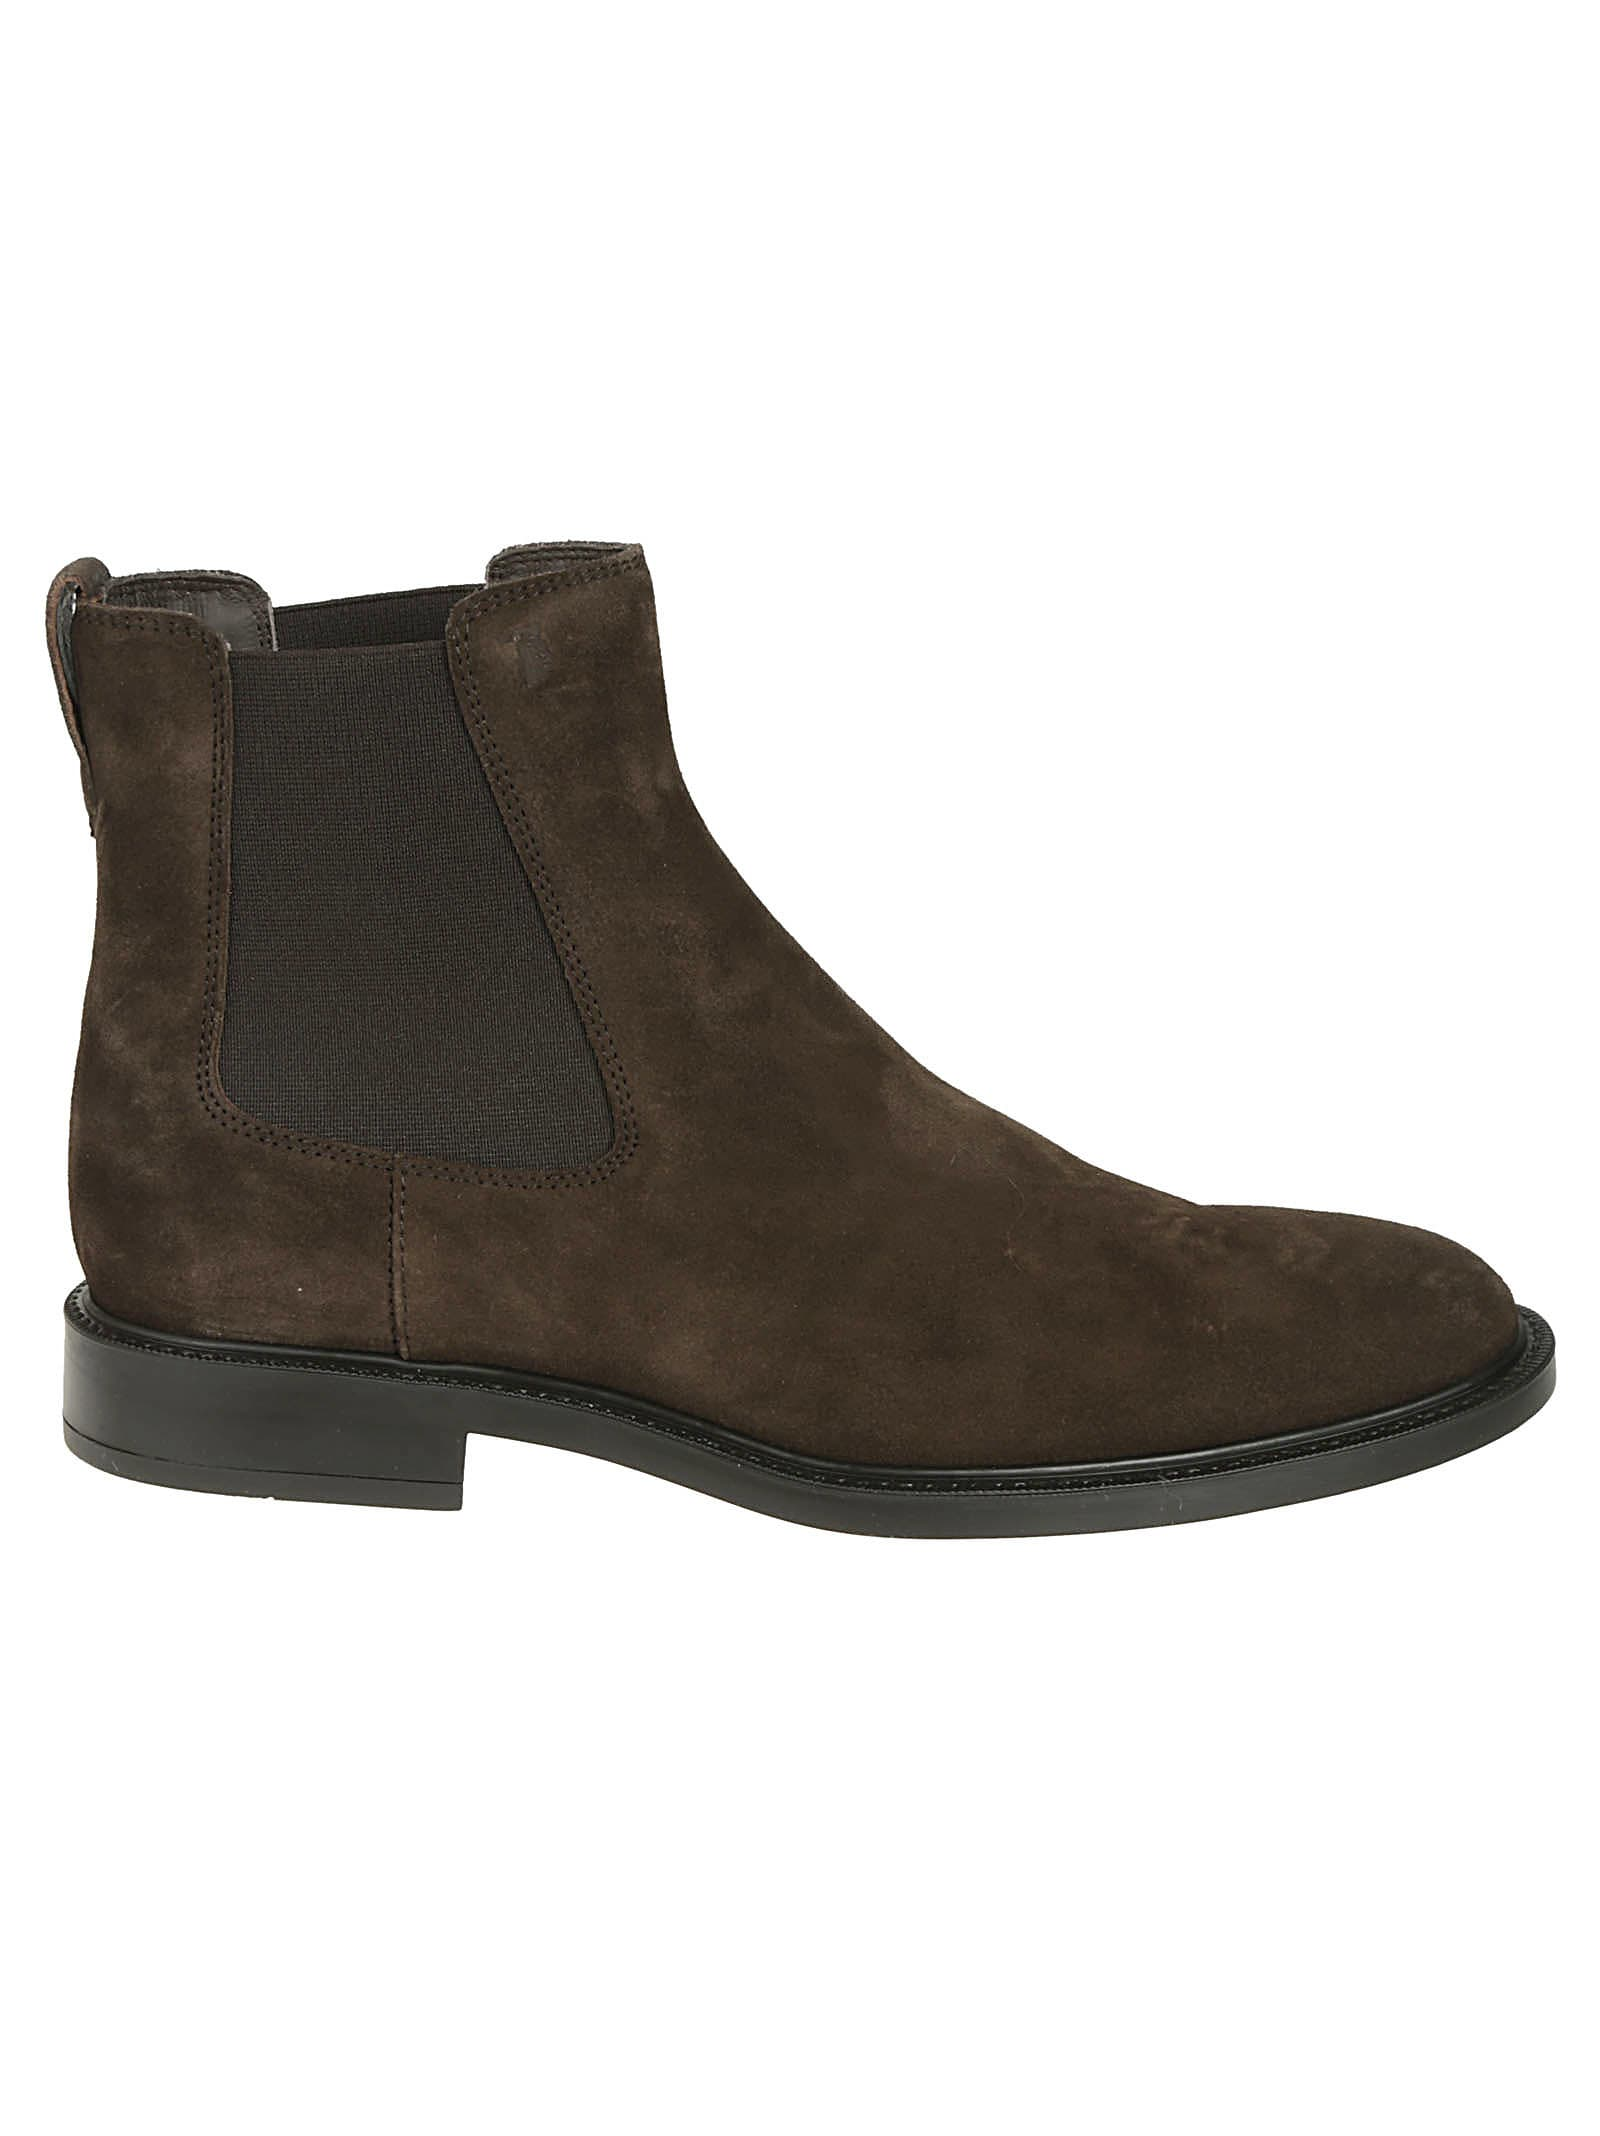 Tods Embossed Ankle Boots